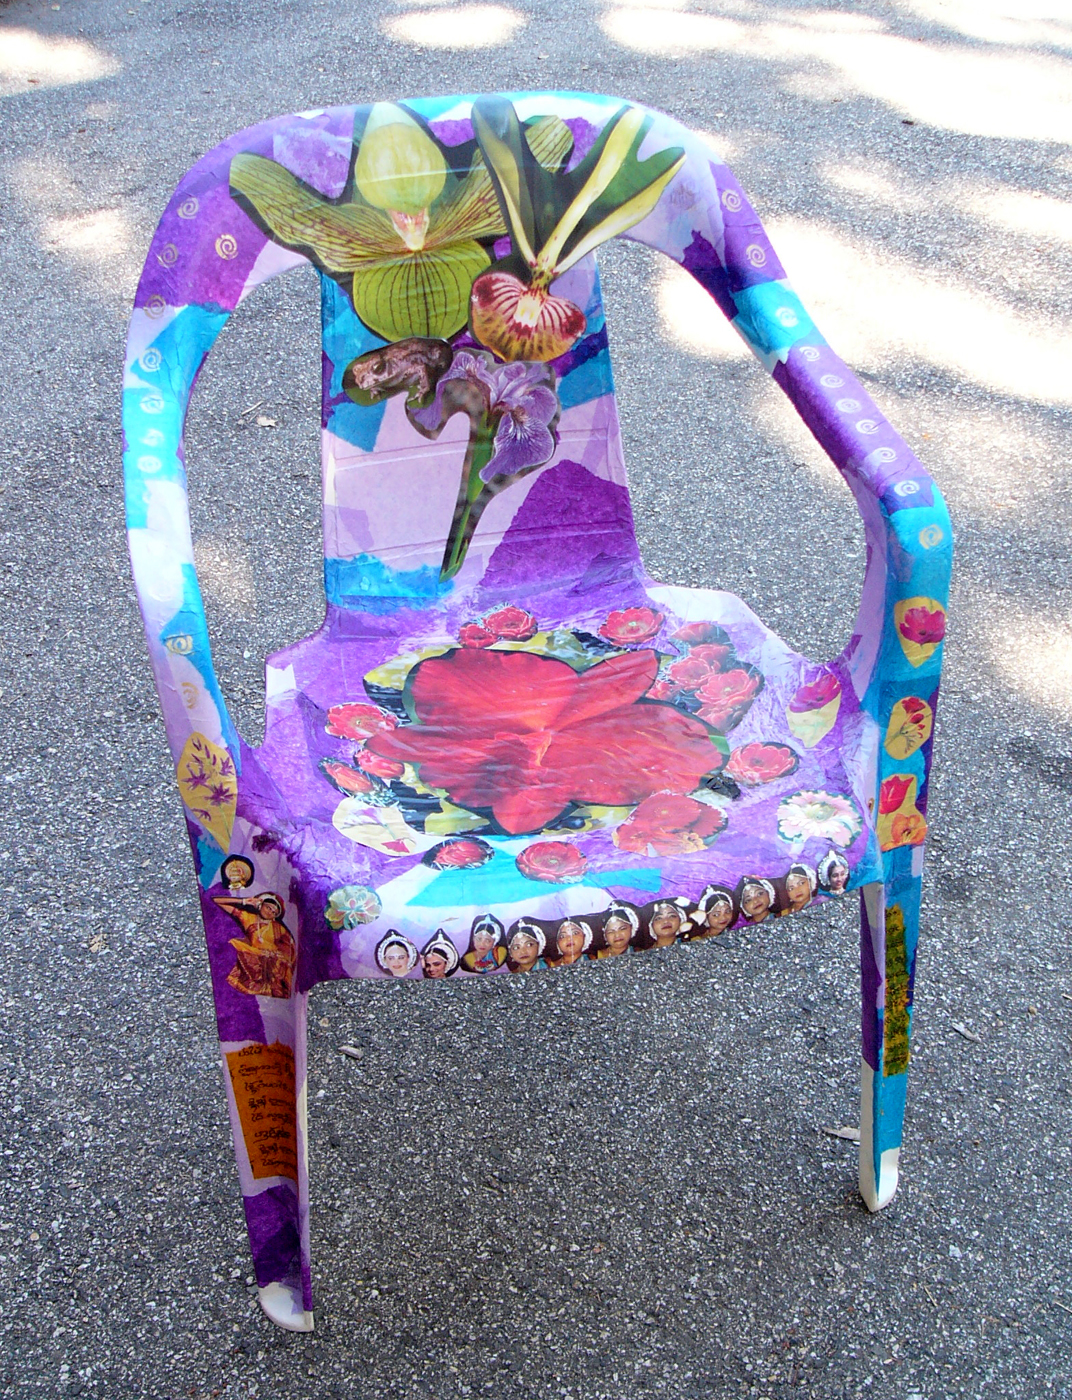 How To Paint Plastic Chairs Bedroom Love Chair The Passionate Maker Project Repainting A Kitchen